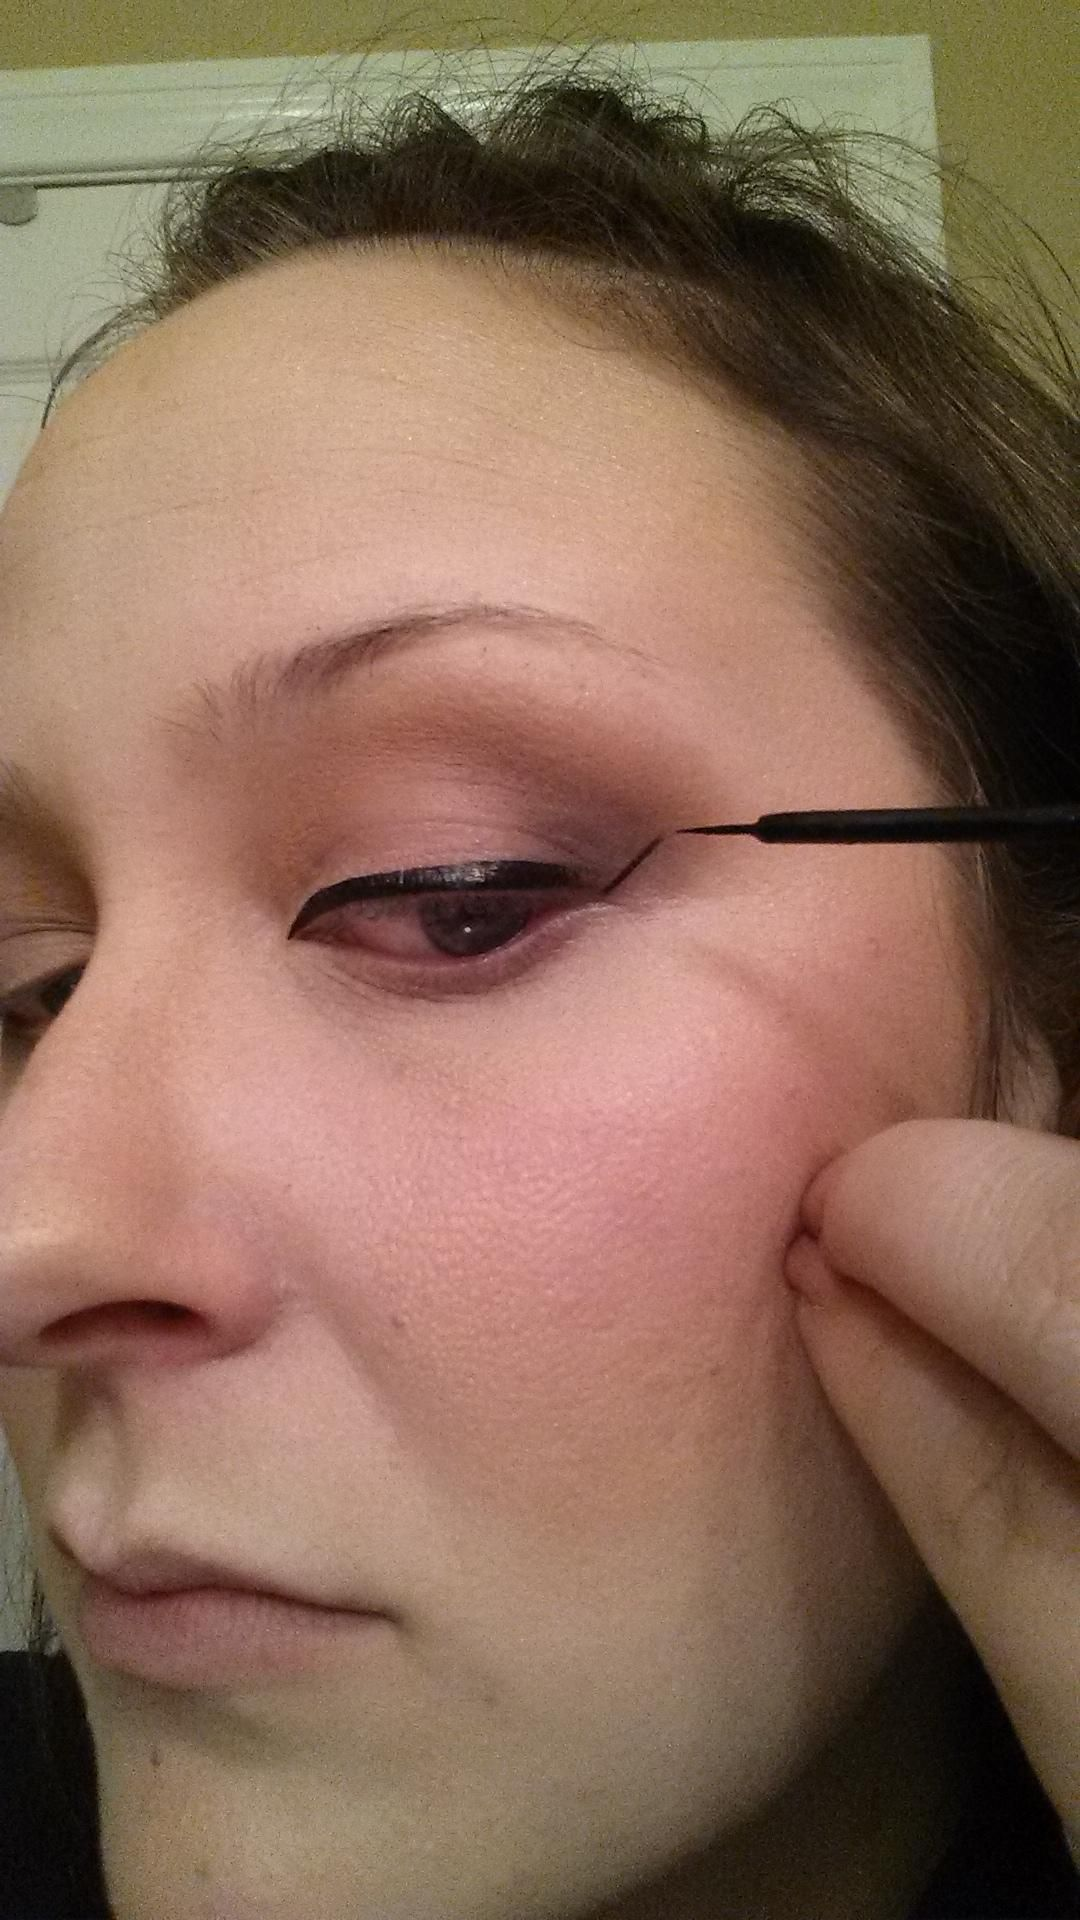 1llowing The Shape Of My Lower Lash Line I Draw A Straight Line